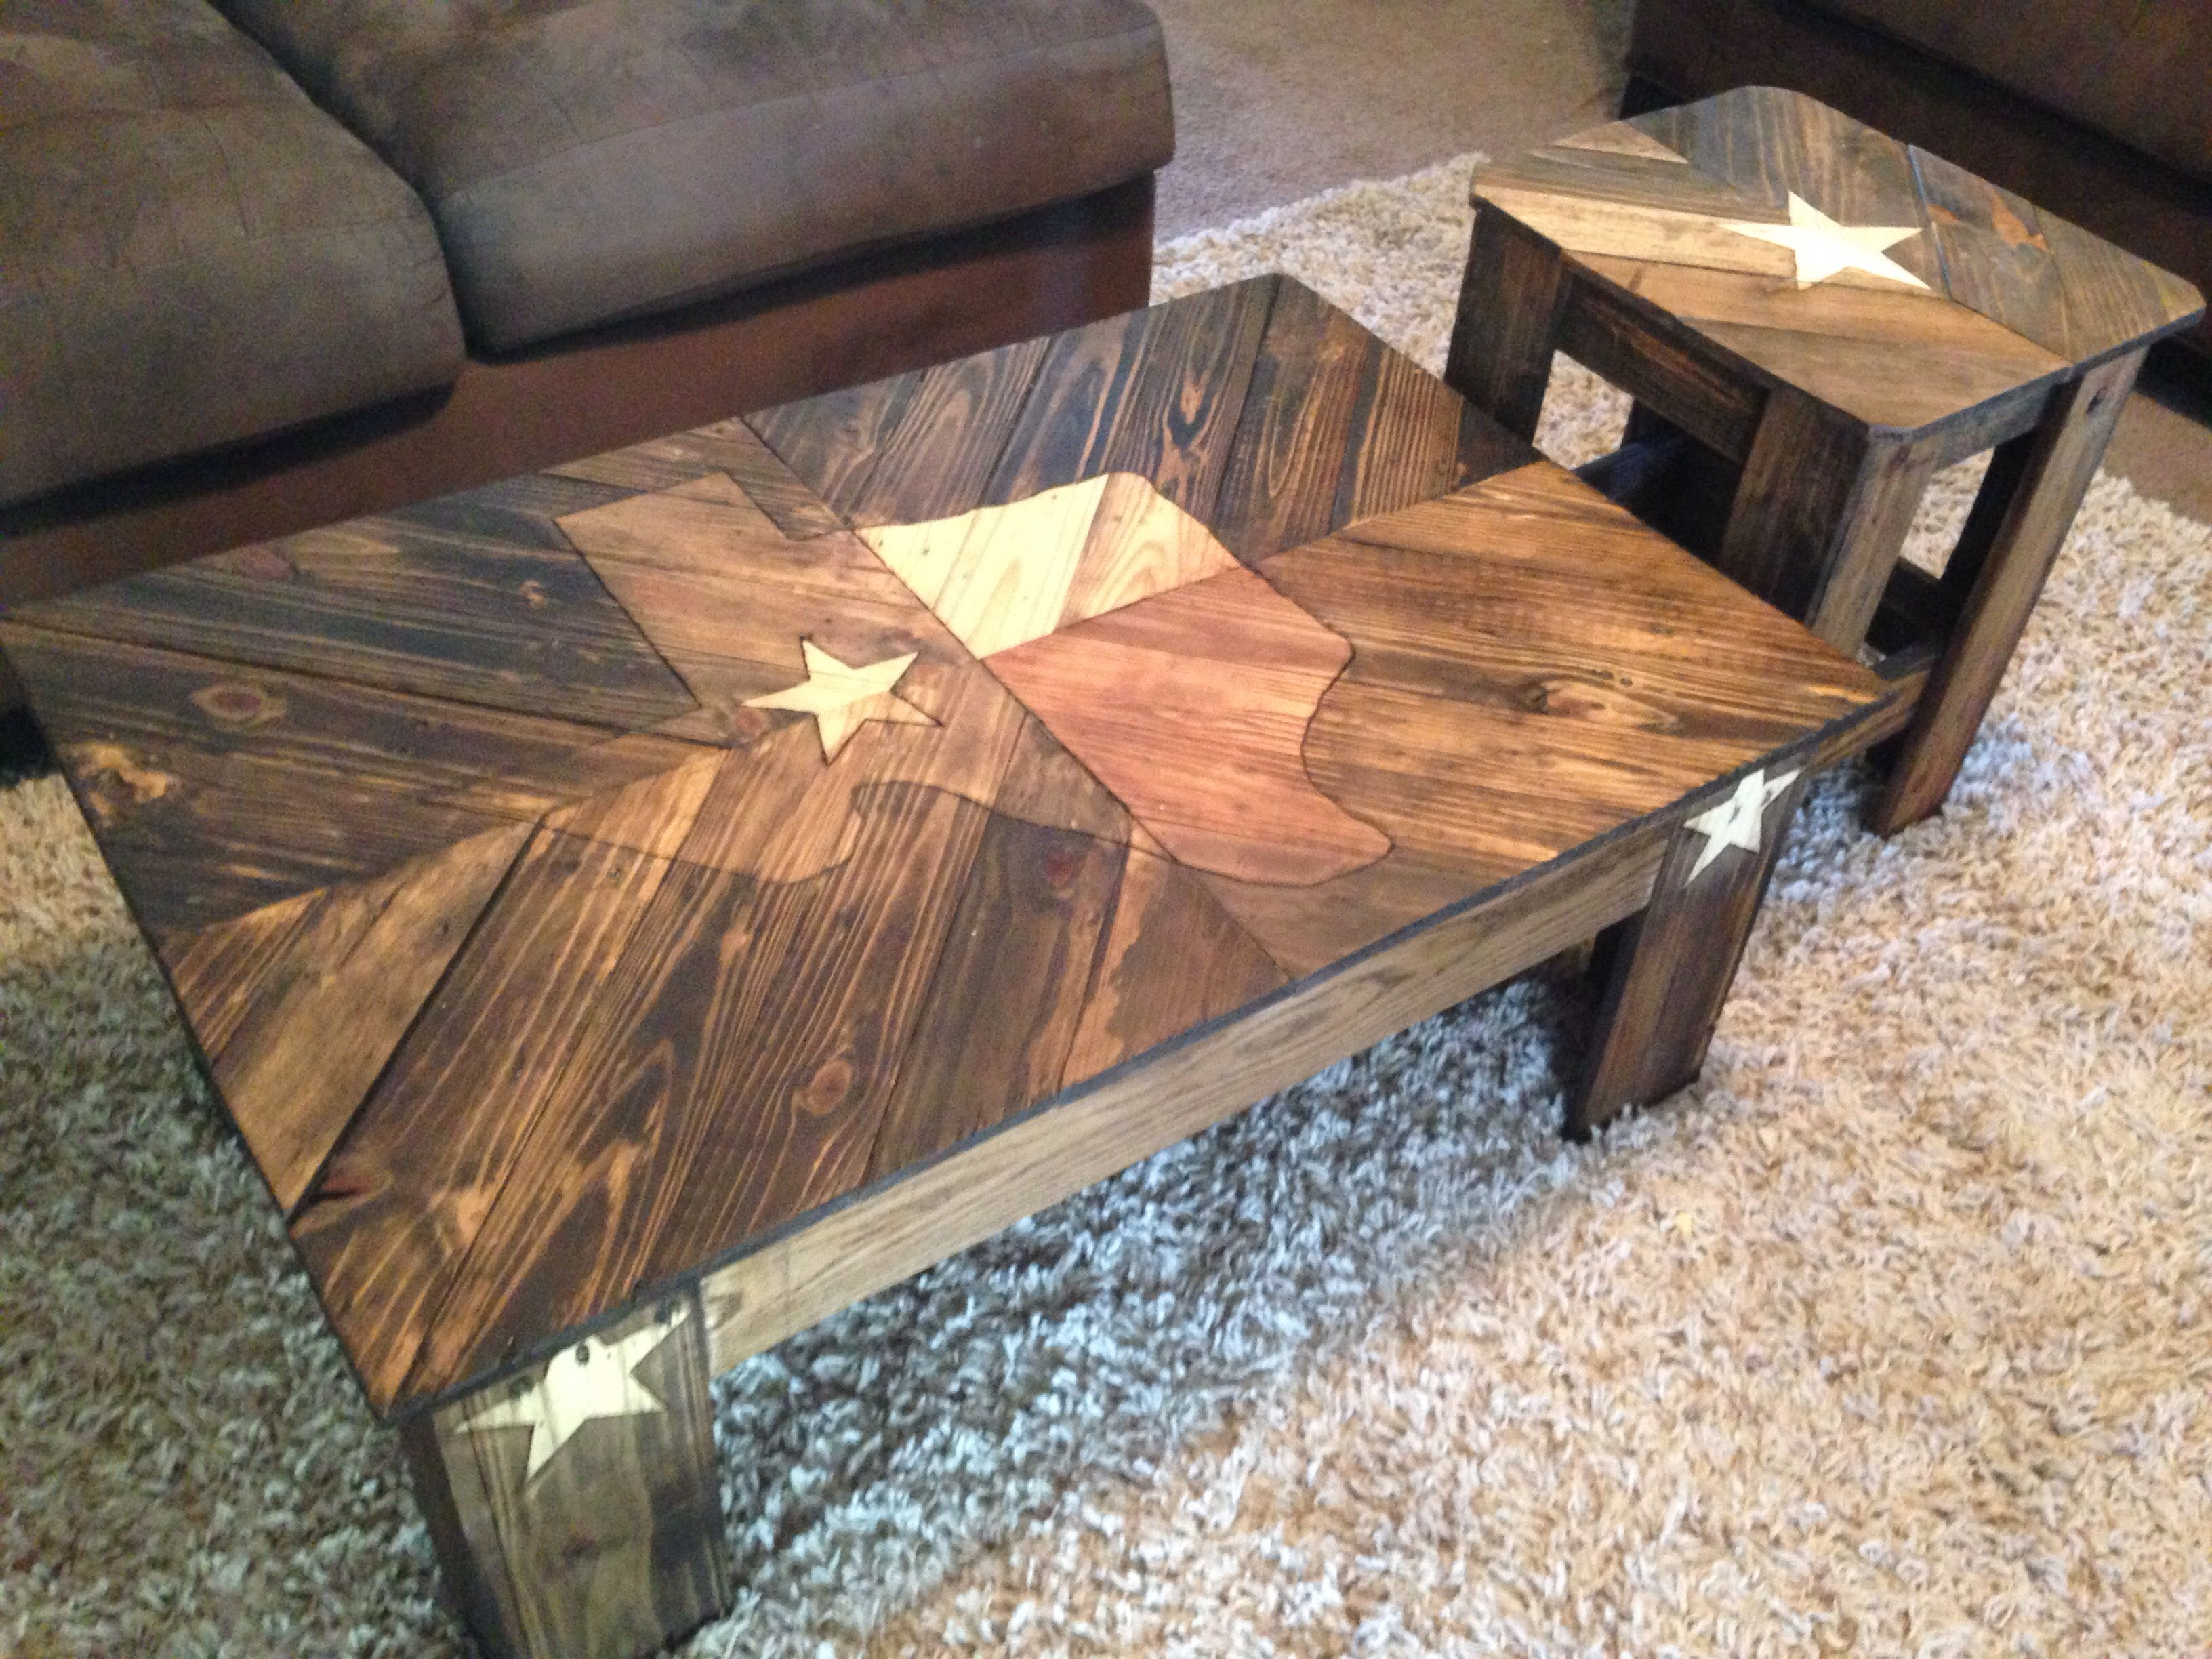 Texas coffee table made from pallet wood design burned in